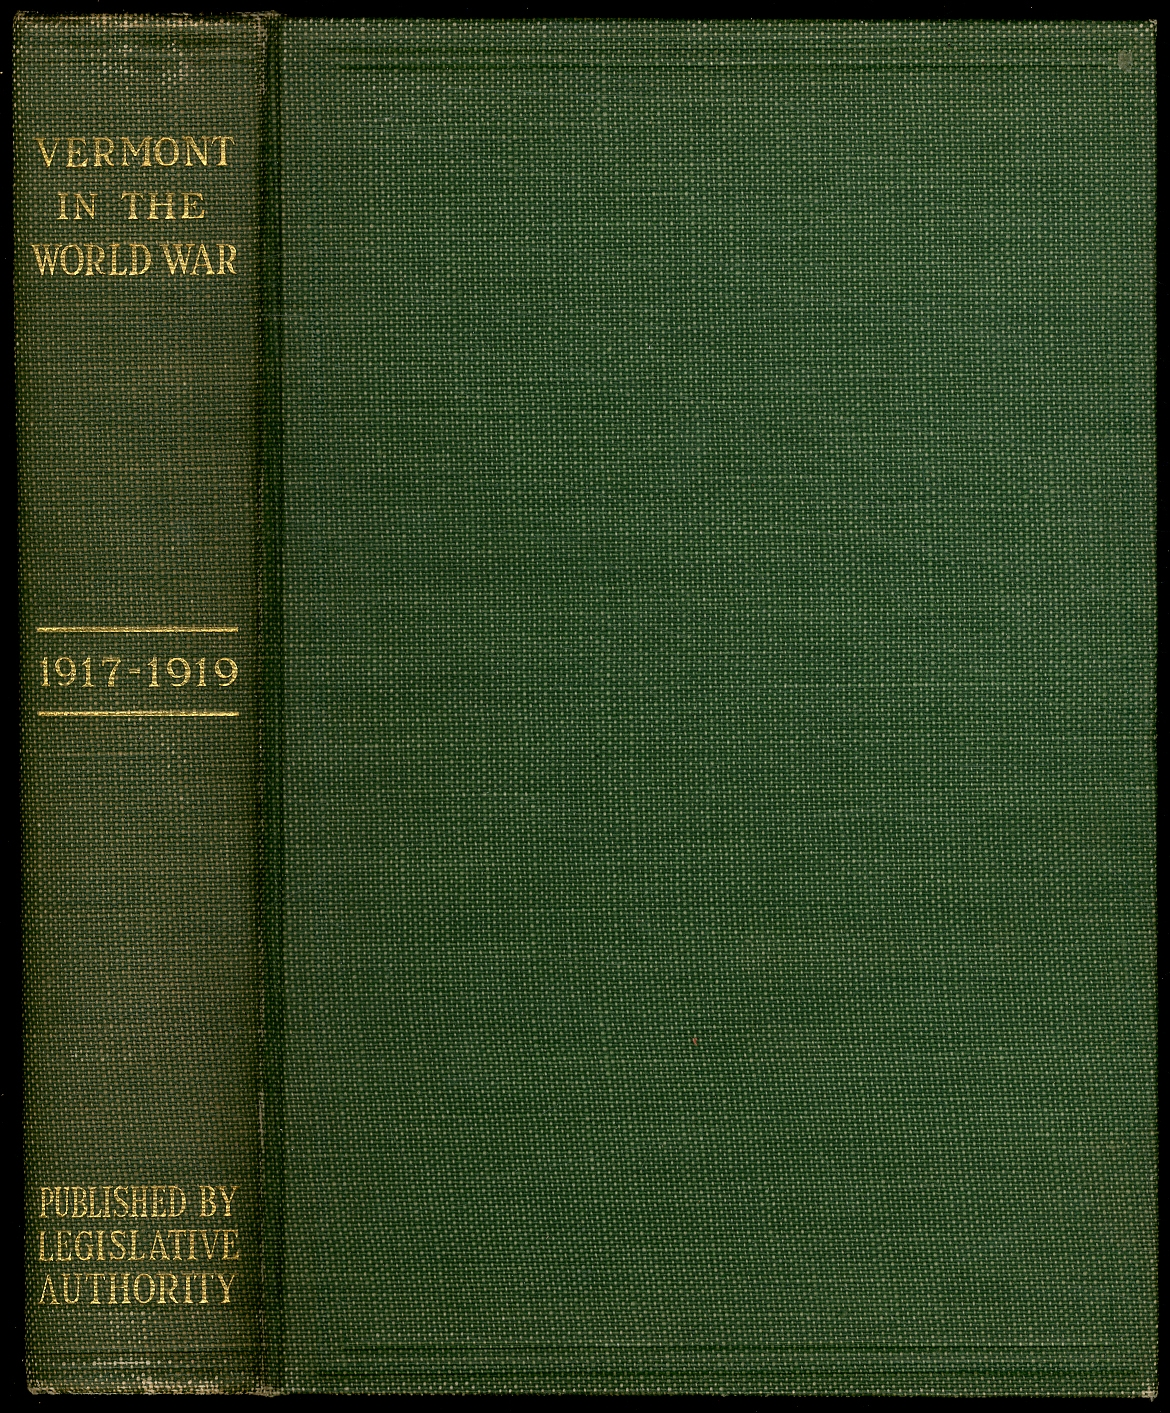 Vermont In The World War 1917 1919 By Cushing John T And Arthur F Stone Editors Harold Sheldon Military Historian Near Fine Hardcover 1928 Between The Covers Rare Books Inc Abaa